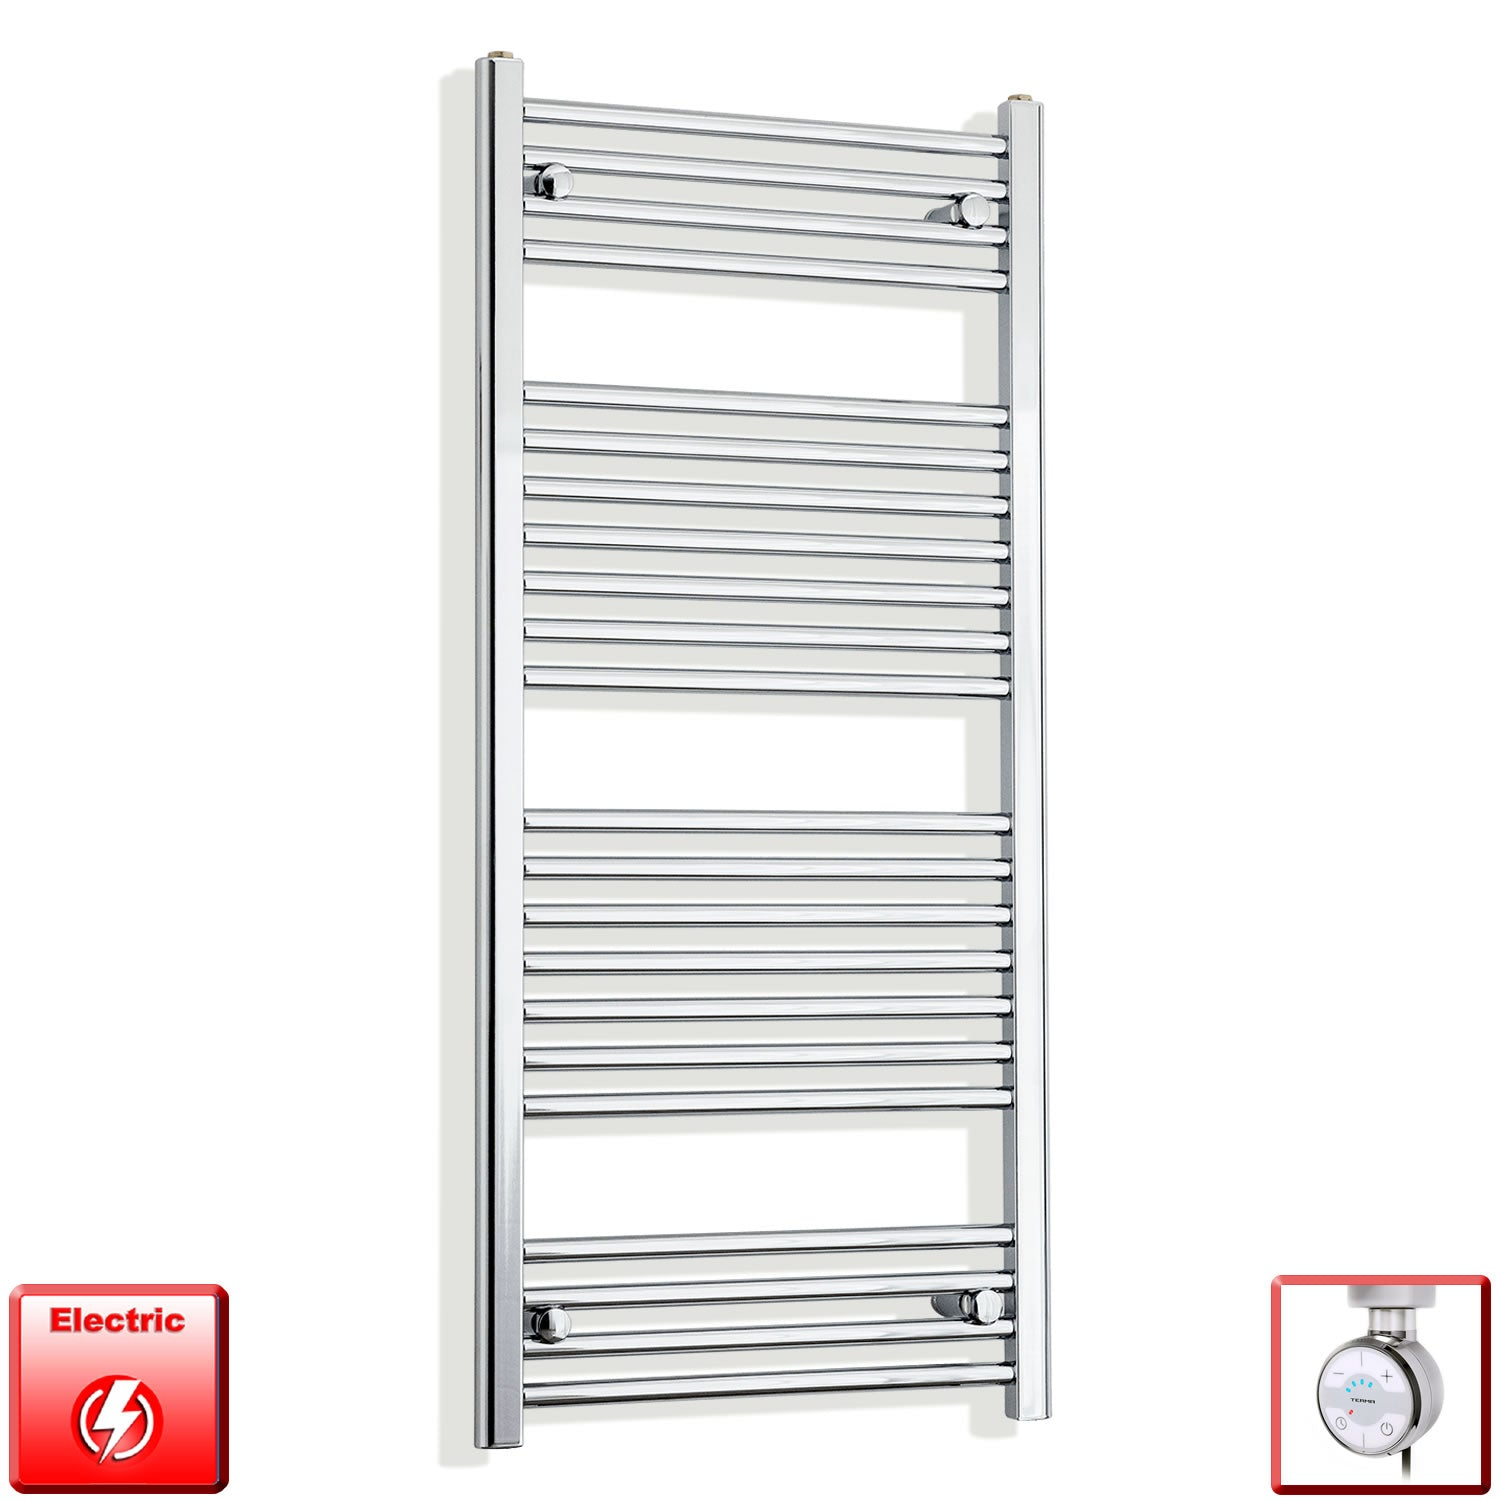 600mm Wide 1200mm High Pre-Filled Chrome Electric Towel Rail Radiator With Thermostatic MOA Element